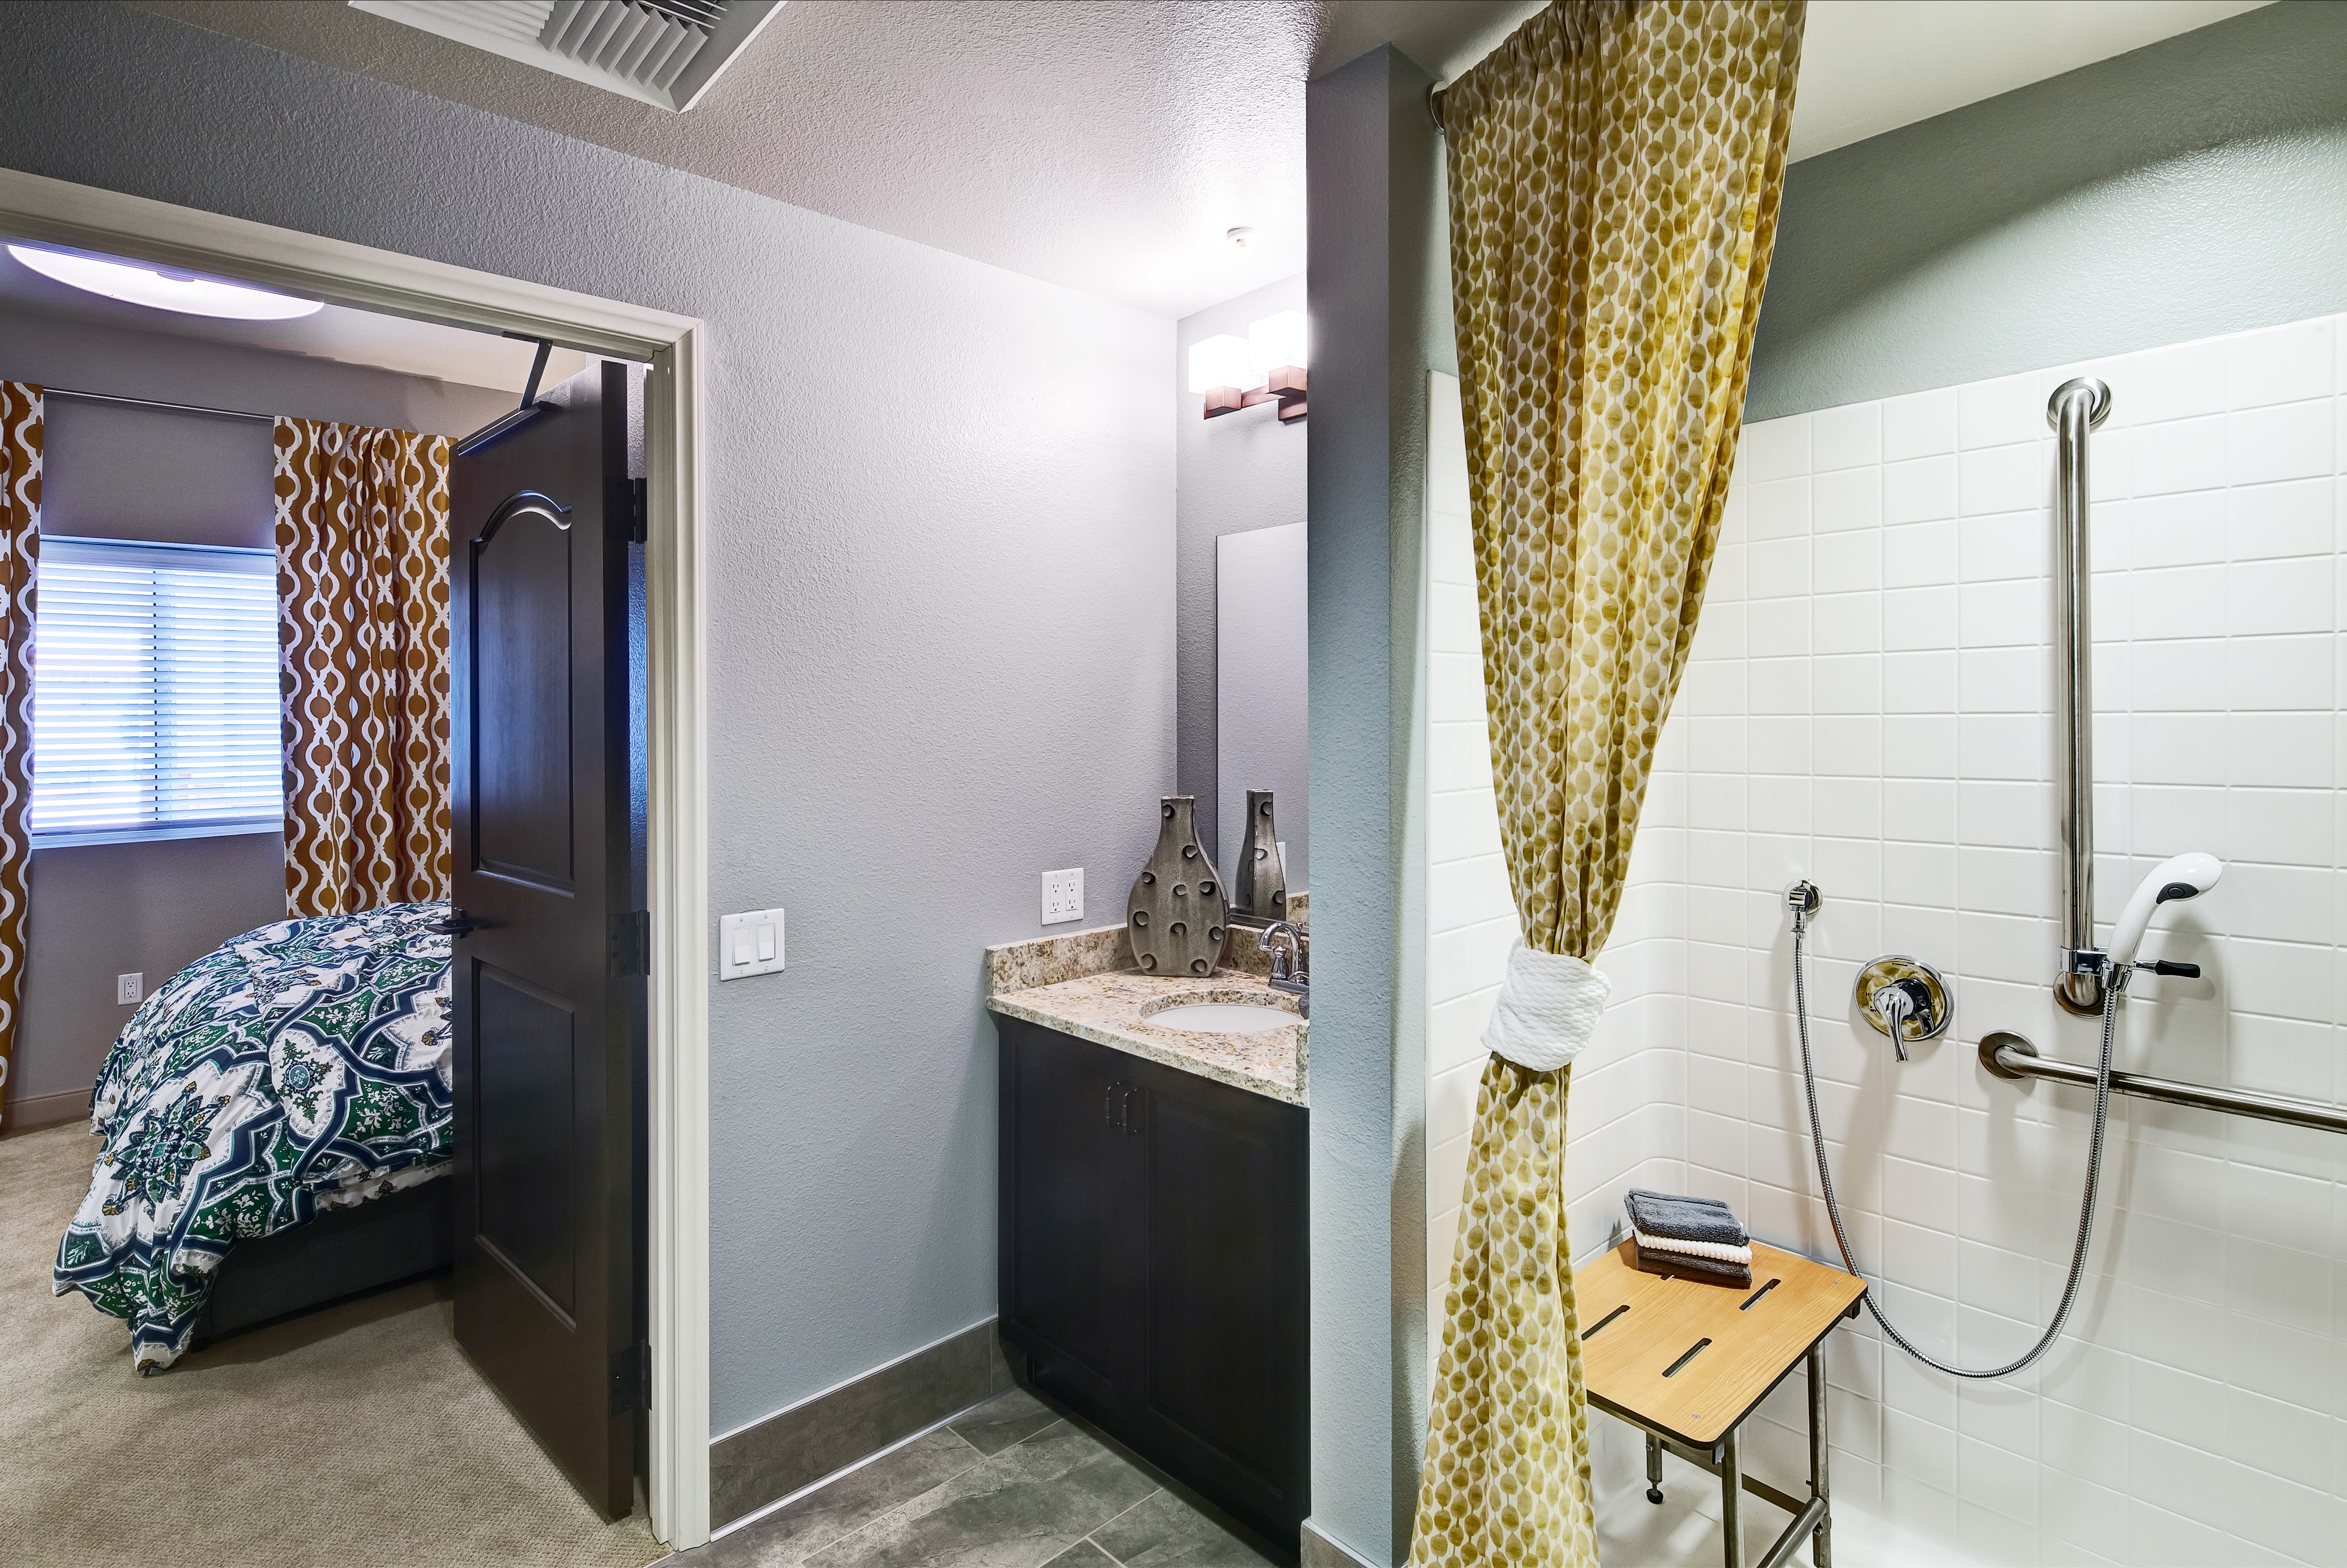 Clearwater at South Bay offers a bathroom in Torrance, California